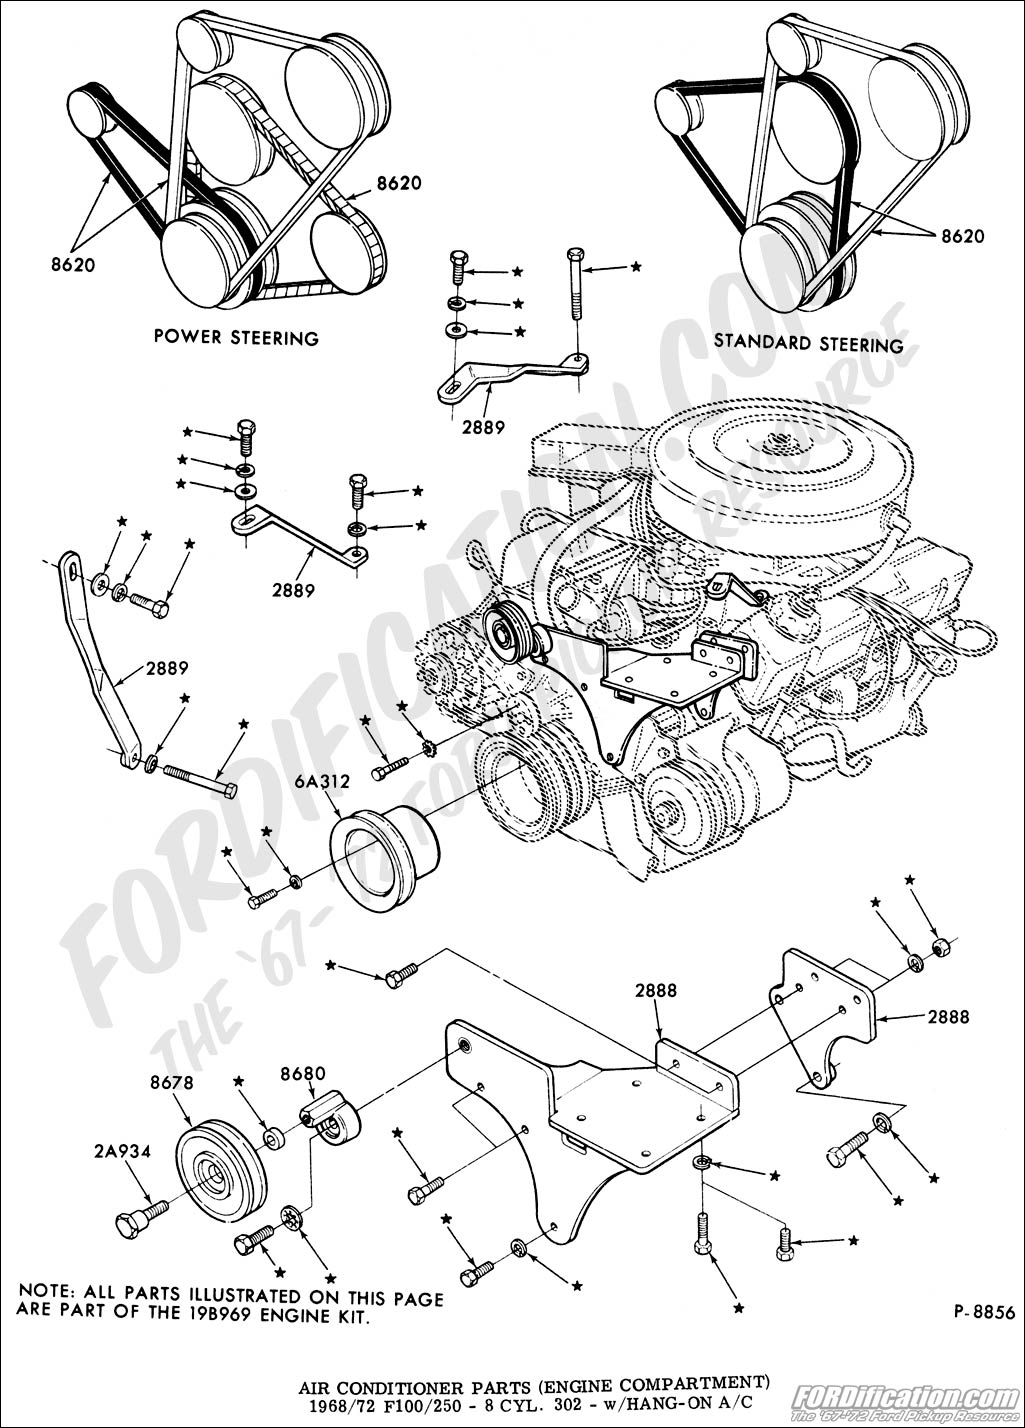 hight resolution of 1966 ford mustang heater wiring diagram 1968 mustang wiring diagram 1966 ford mustang heater wiring diagram